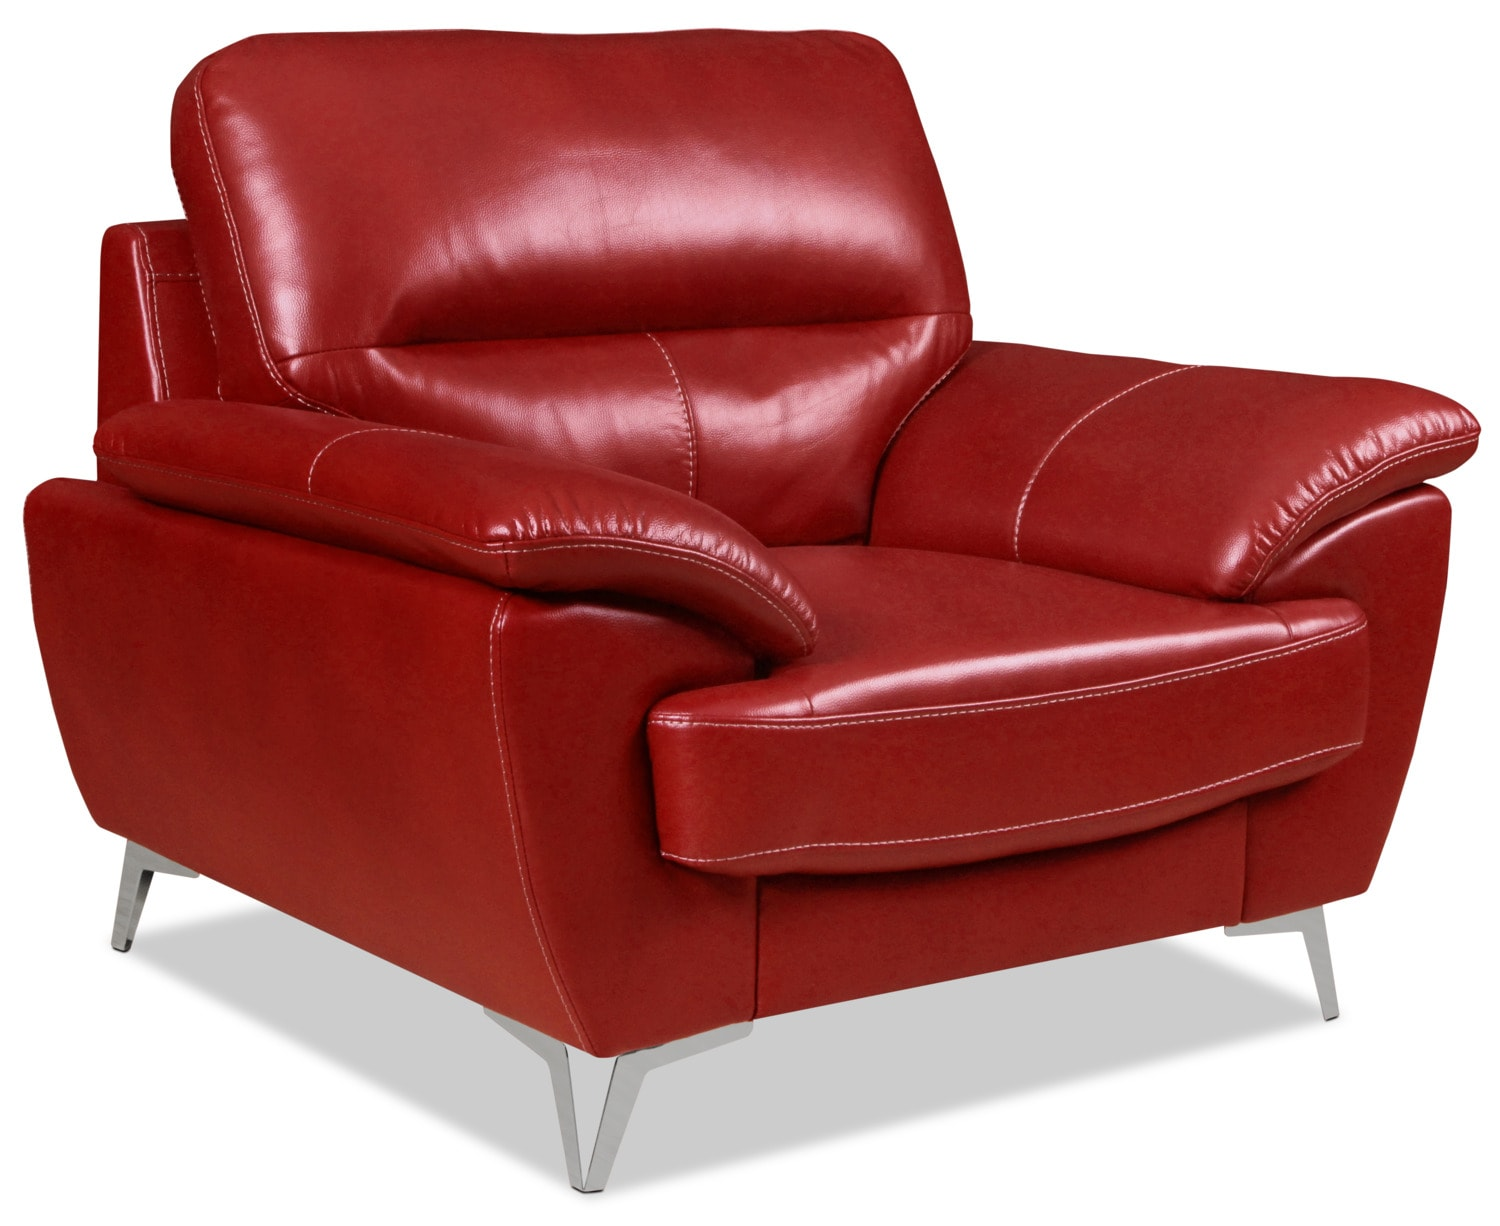 Olivia Leather-Look Fabric Chair – Red